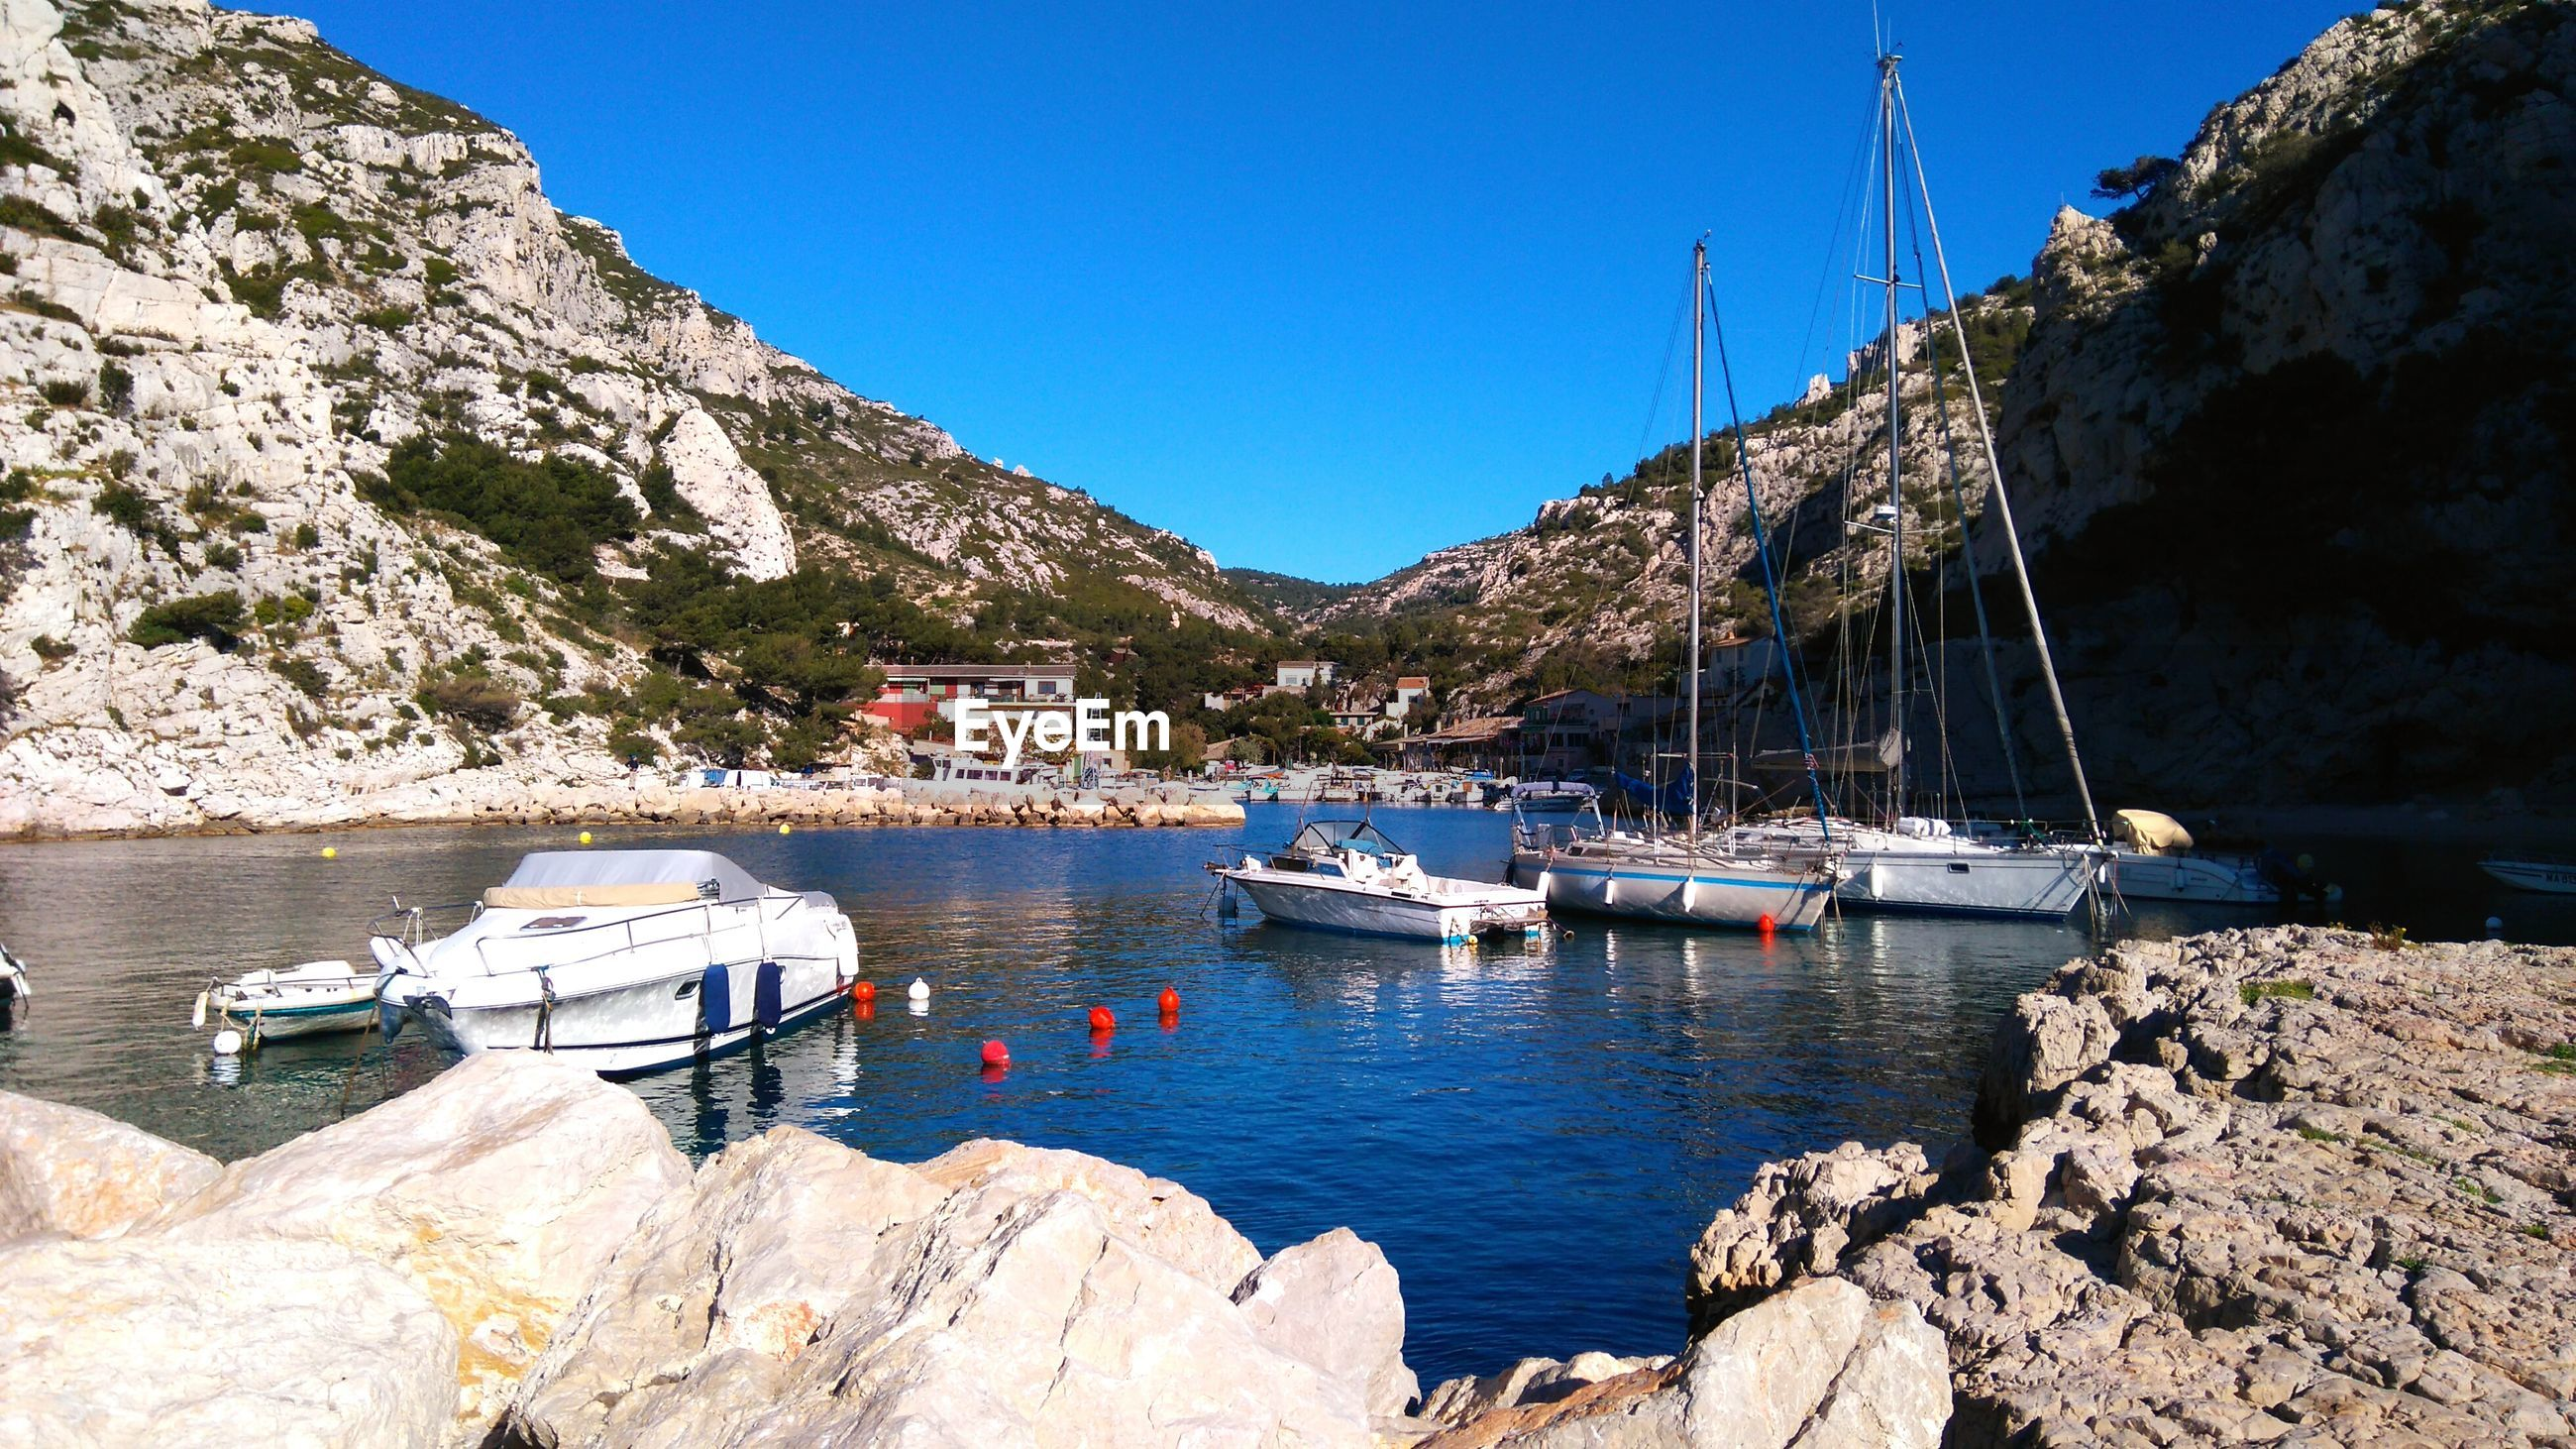 nautical vessel, mode of transport, boat, transportation, water, mountain, sunlight, rock - object, moored, clear sky, nature, day, sunny, no people, waterfront, sea, outdoors, mast, tranquil scene, sailboat, blue, yacht, beauty in nature, scenics, architecture, travel destinations, built structure, building exterior, harbor, sailing, tree, sky